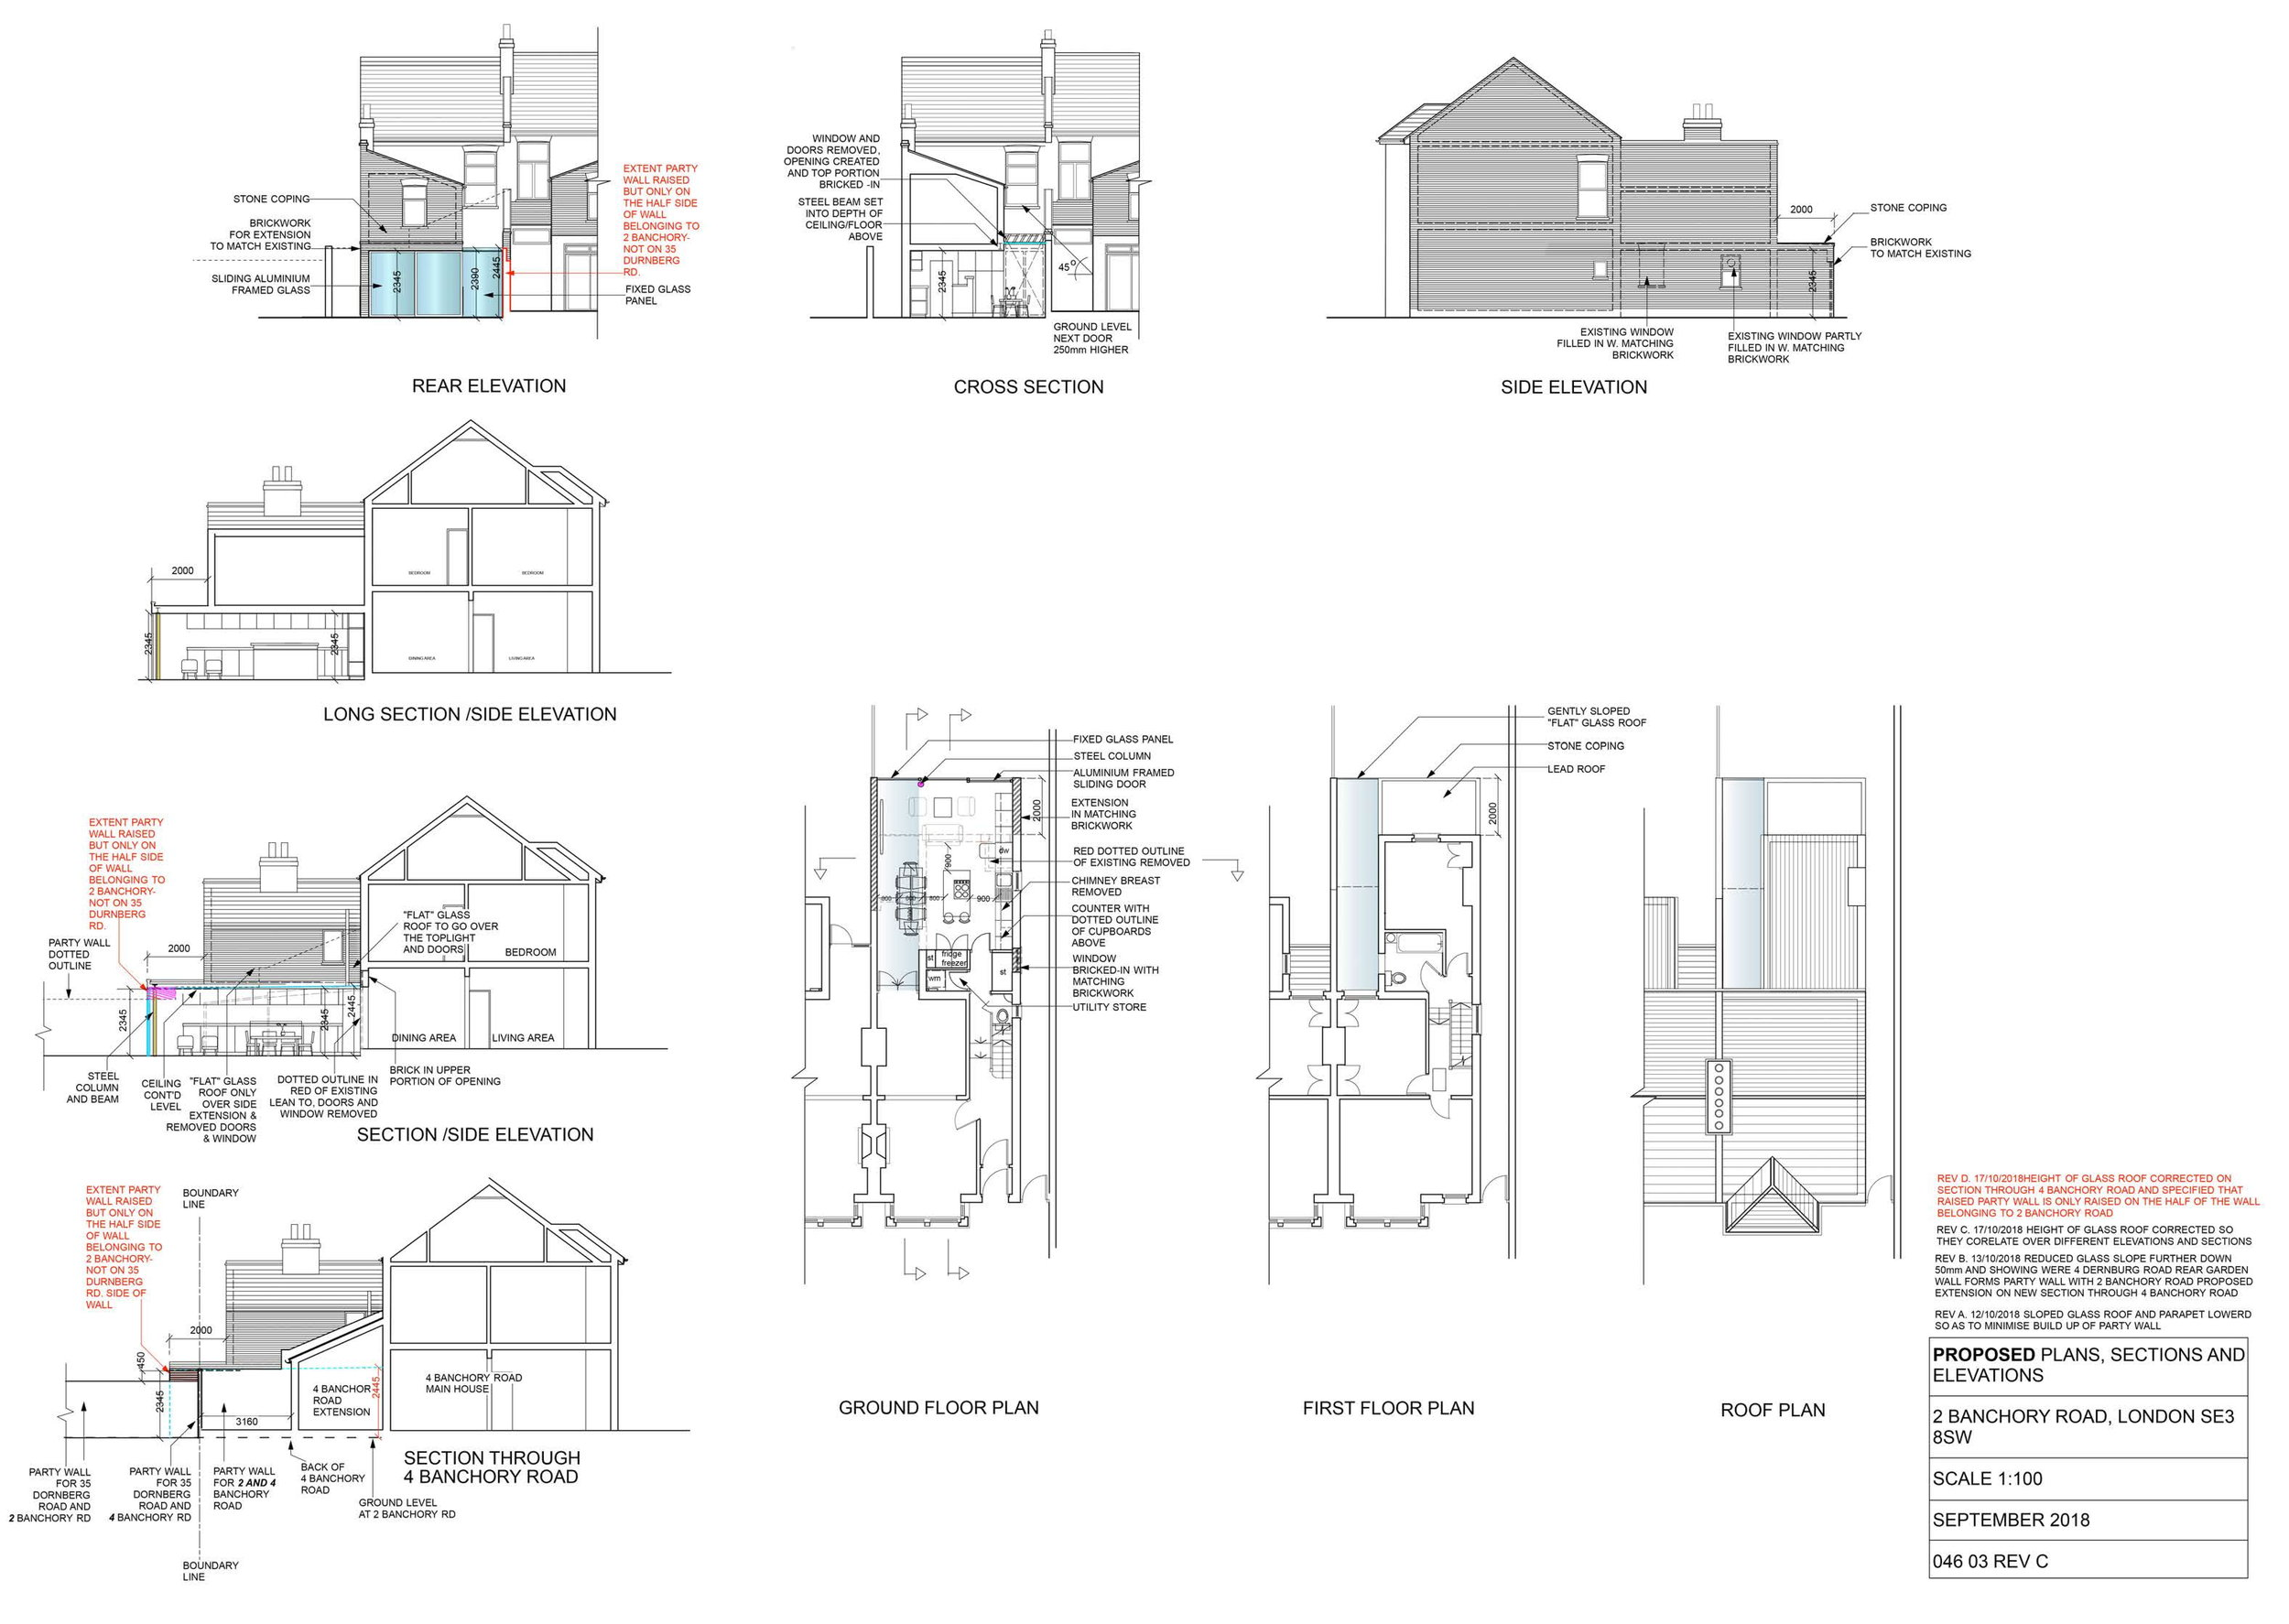 046 03 REV D PROPOSED PLANS SECTIONS AND ELEVATIONS-Backup-20180701191937-Backup-20180912183245-1.jpg